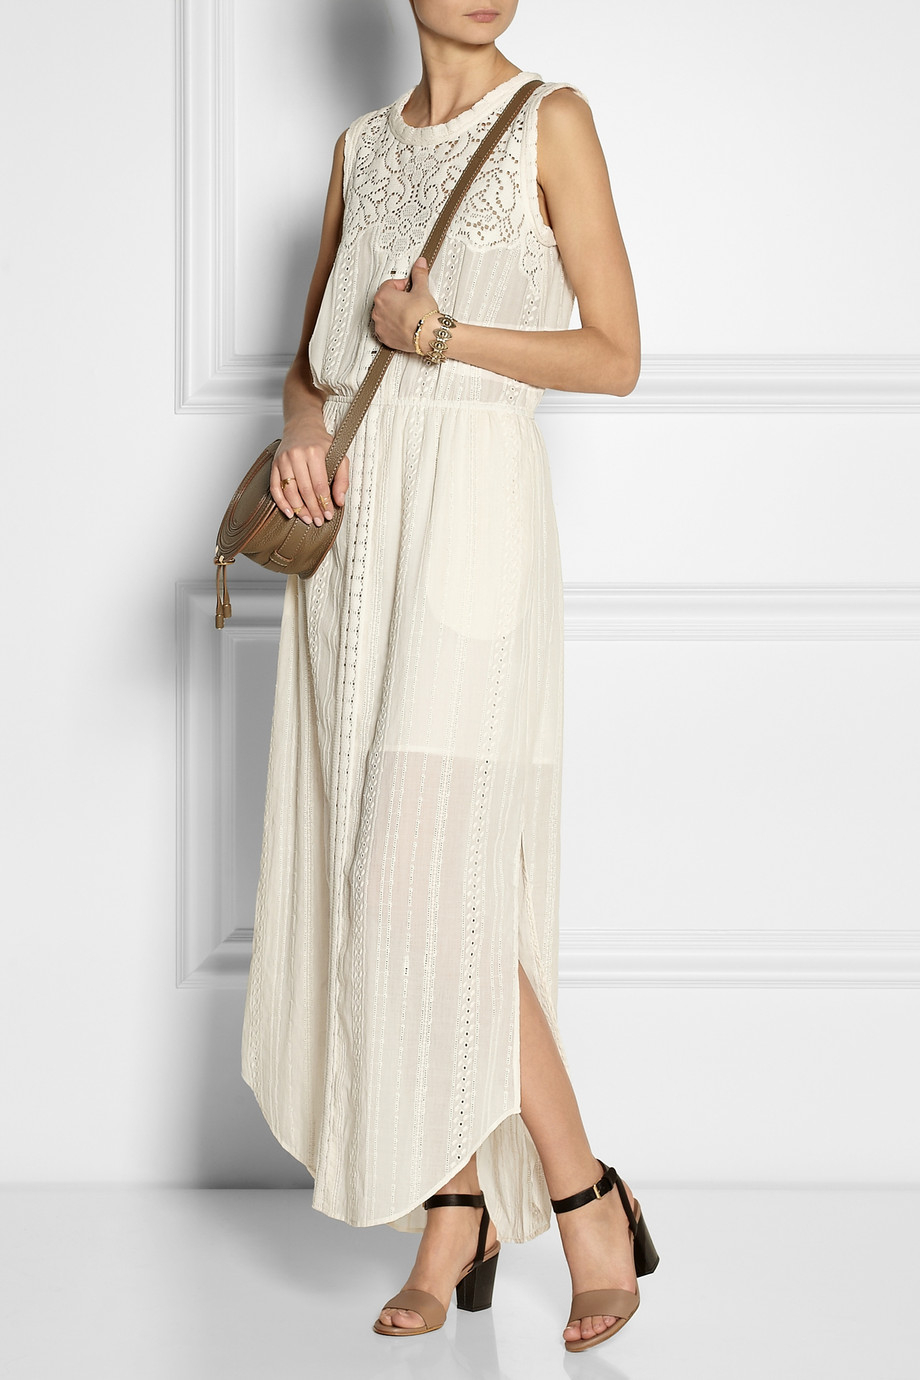 Lyst Sea Lacepaneled Broderie Anglaise Cotton Maxi Dress